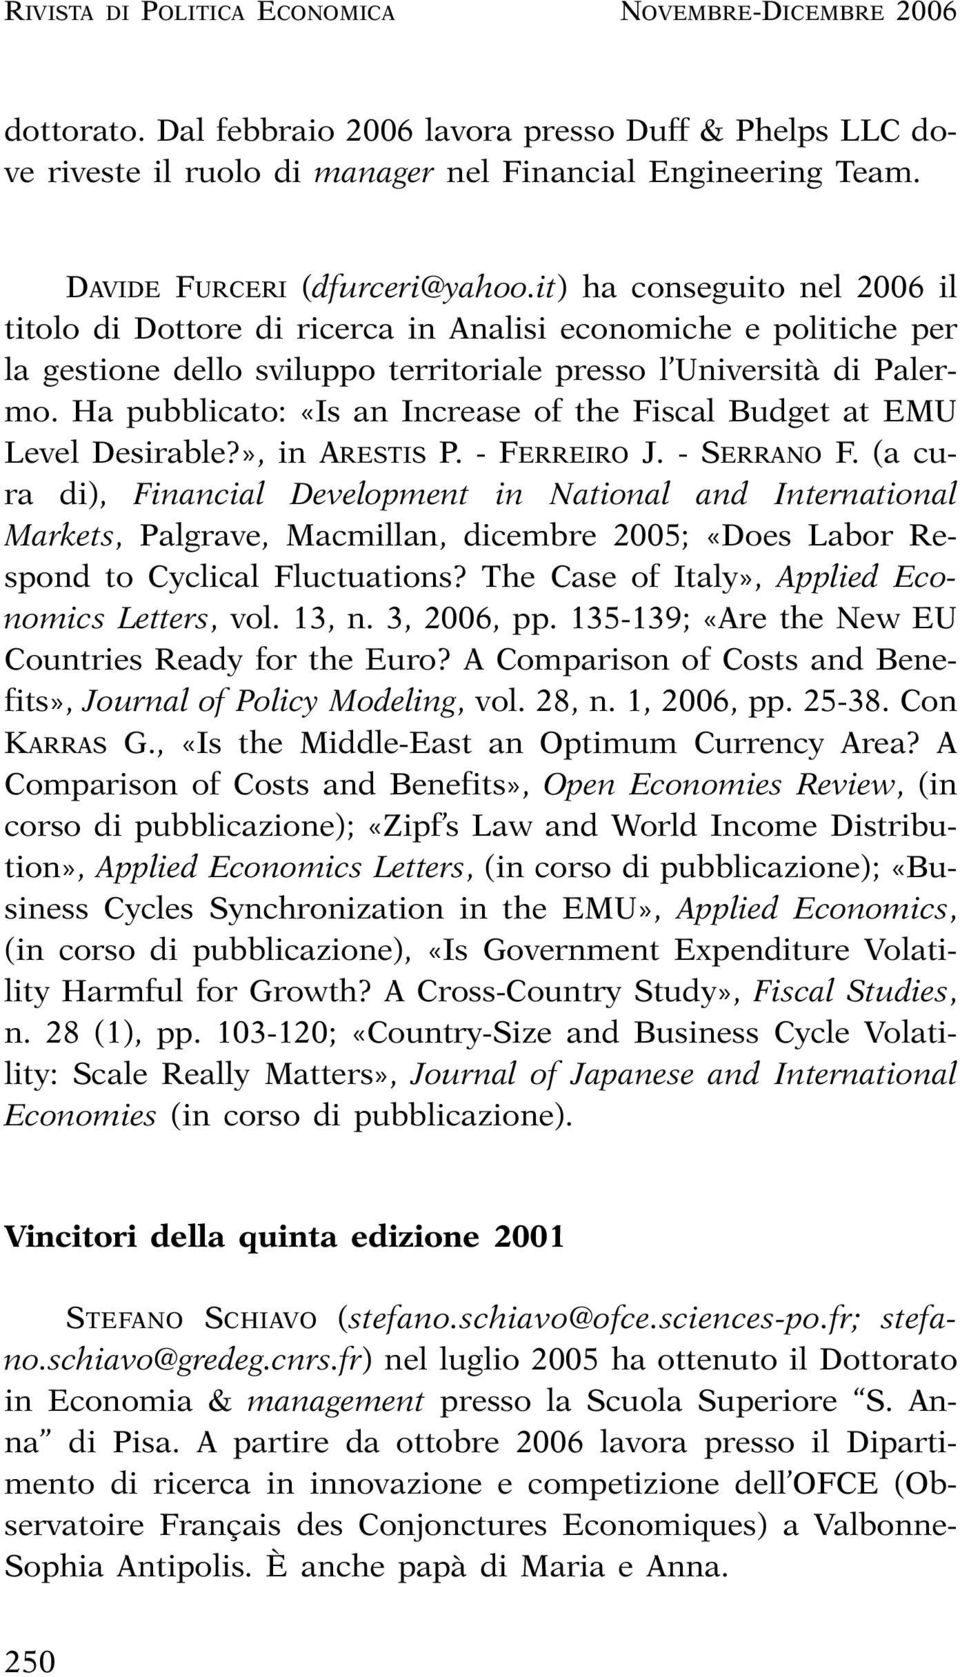 Ha pubblicato: «Is an Increase of the Fiscal Budget at EMU Level Desirable?», in ARESTIS P. - FERREIRO J. - SERRANO F.